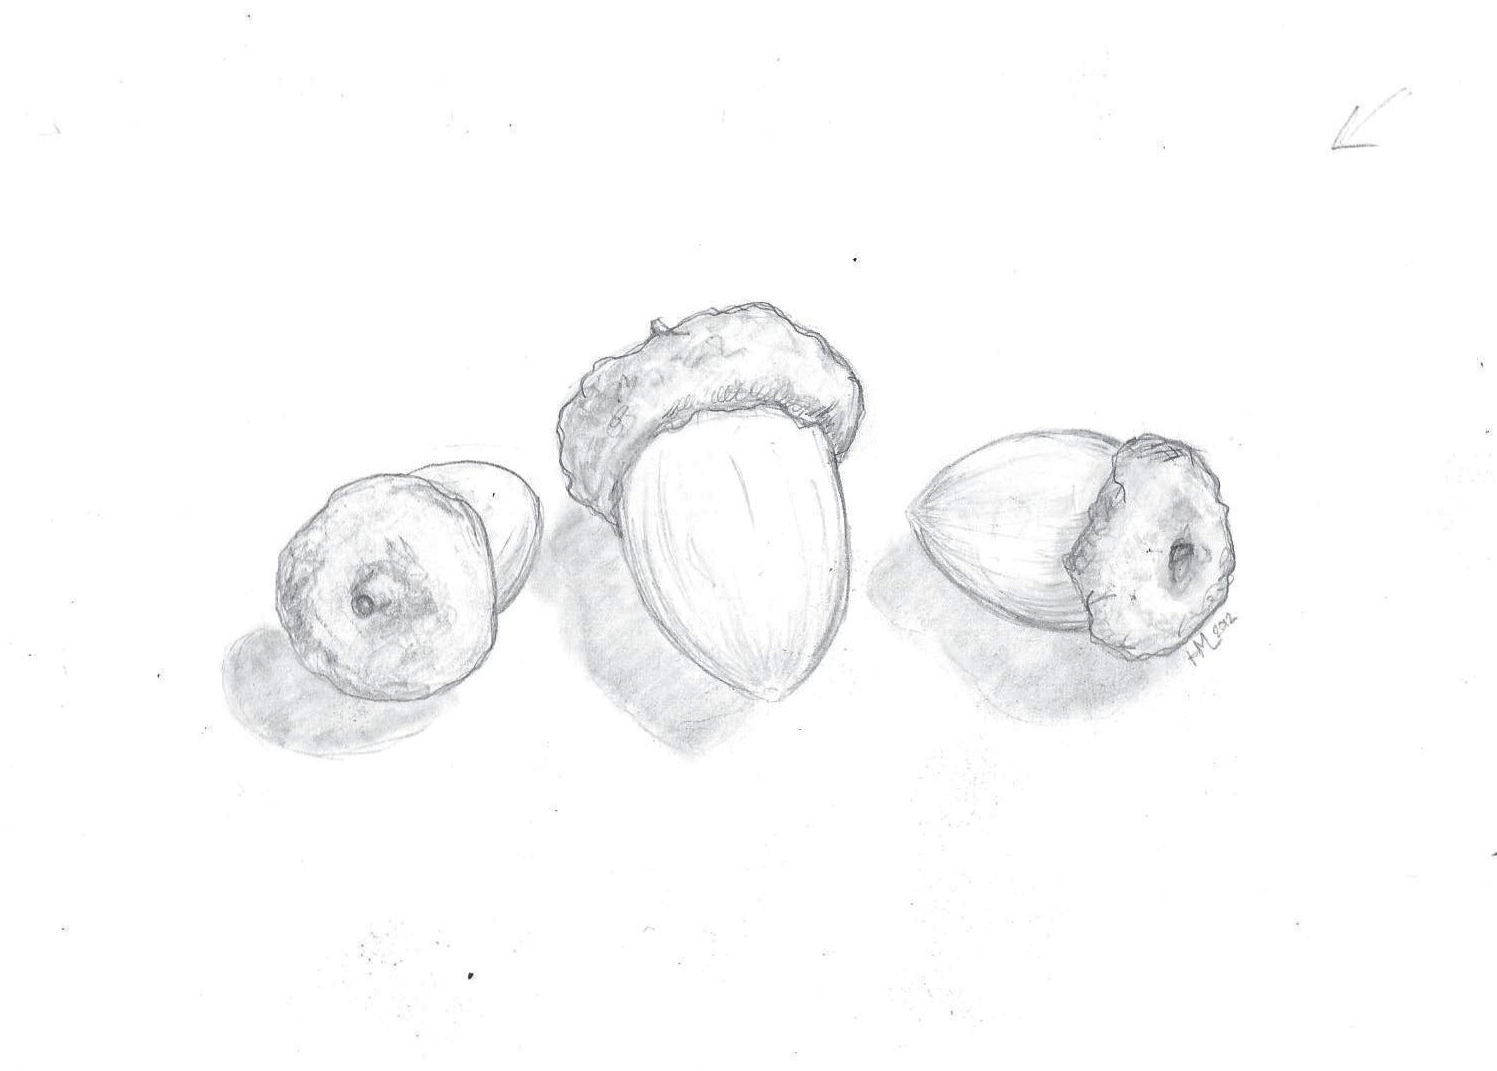 Uncategorized Drawings Of Acorns from pencil to paper realism drawings acorns